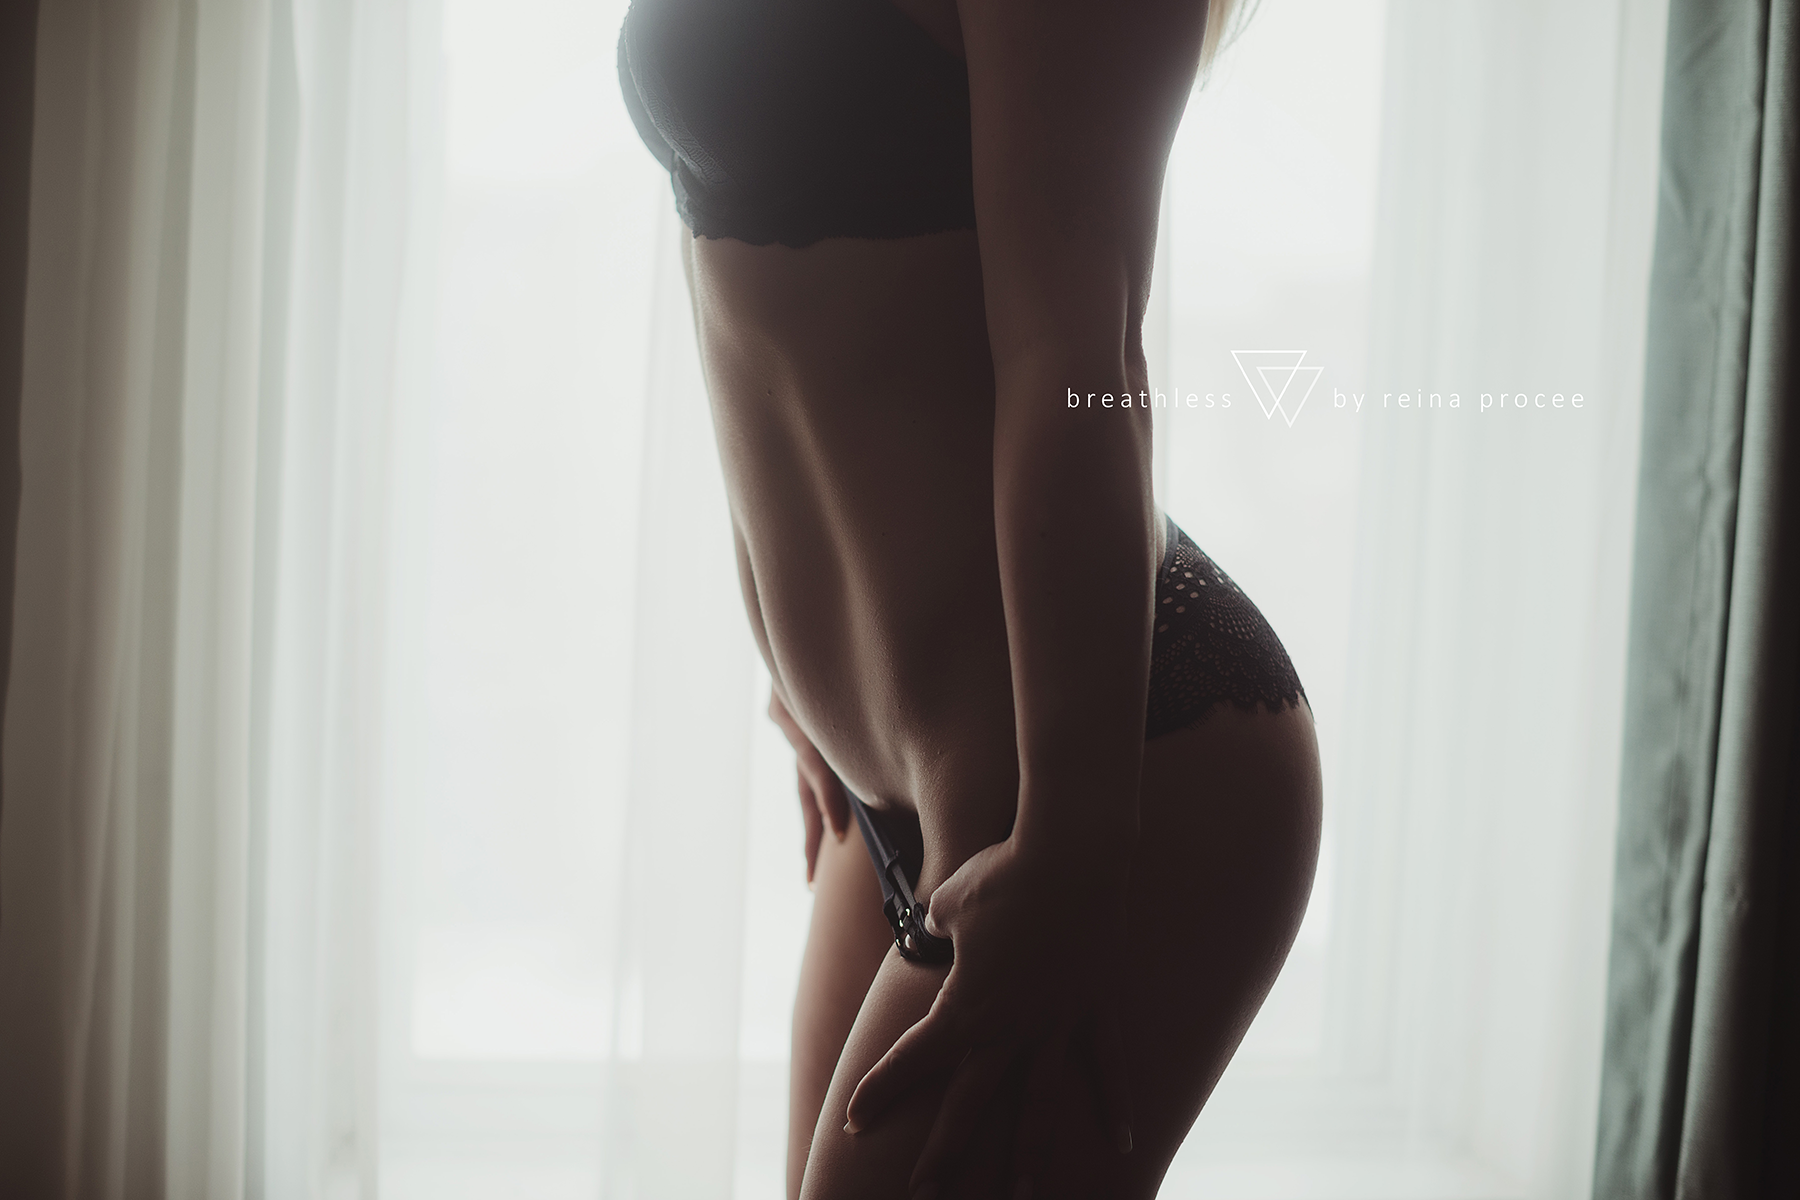 montreal-boudoir-beauty-exotic-empower-women-ladies-comfort-progress-photography-photographer-2.png